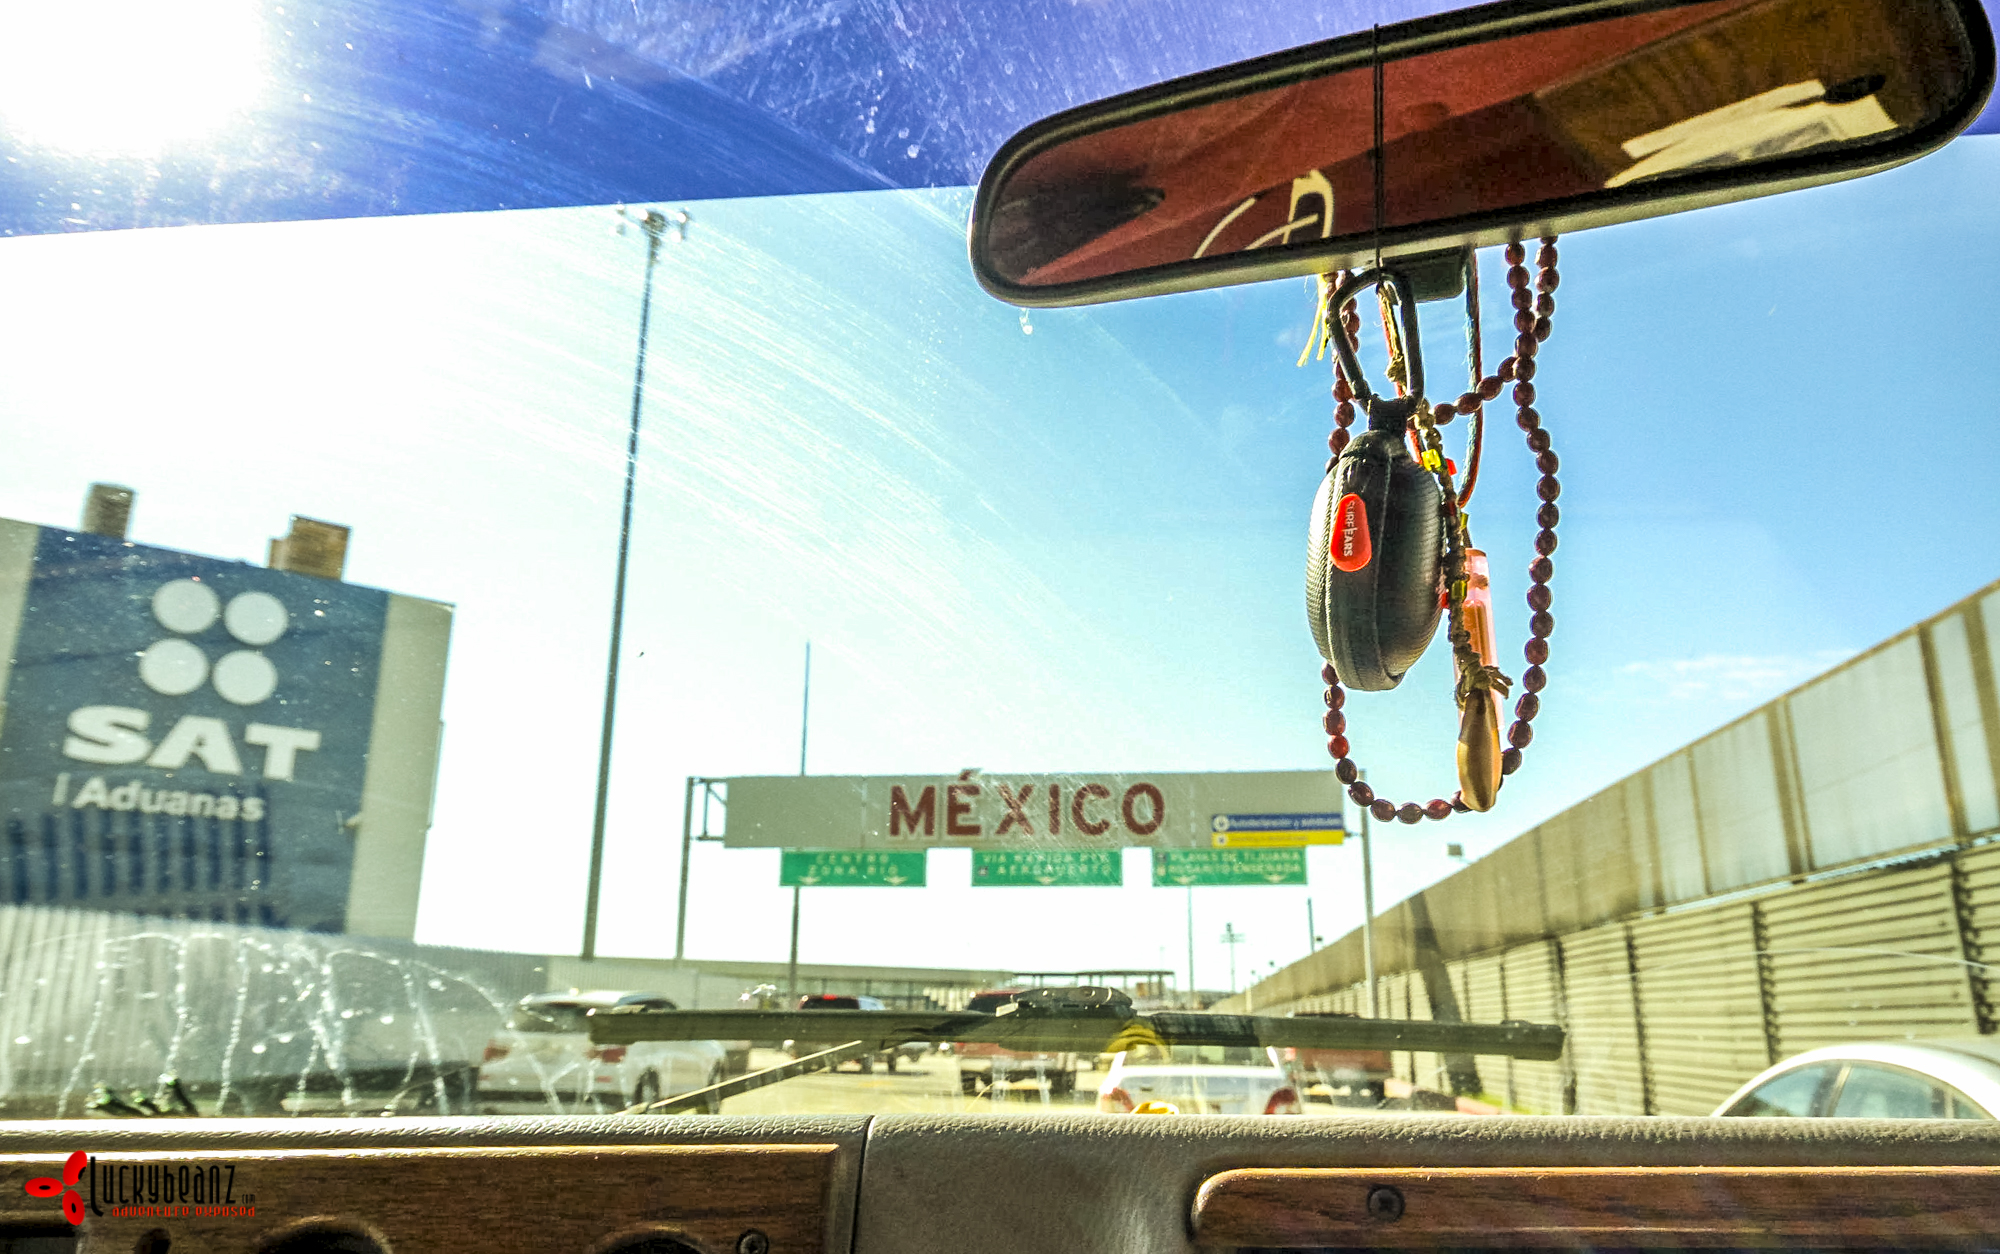 Welcome to Mexico.